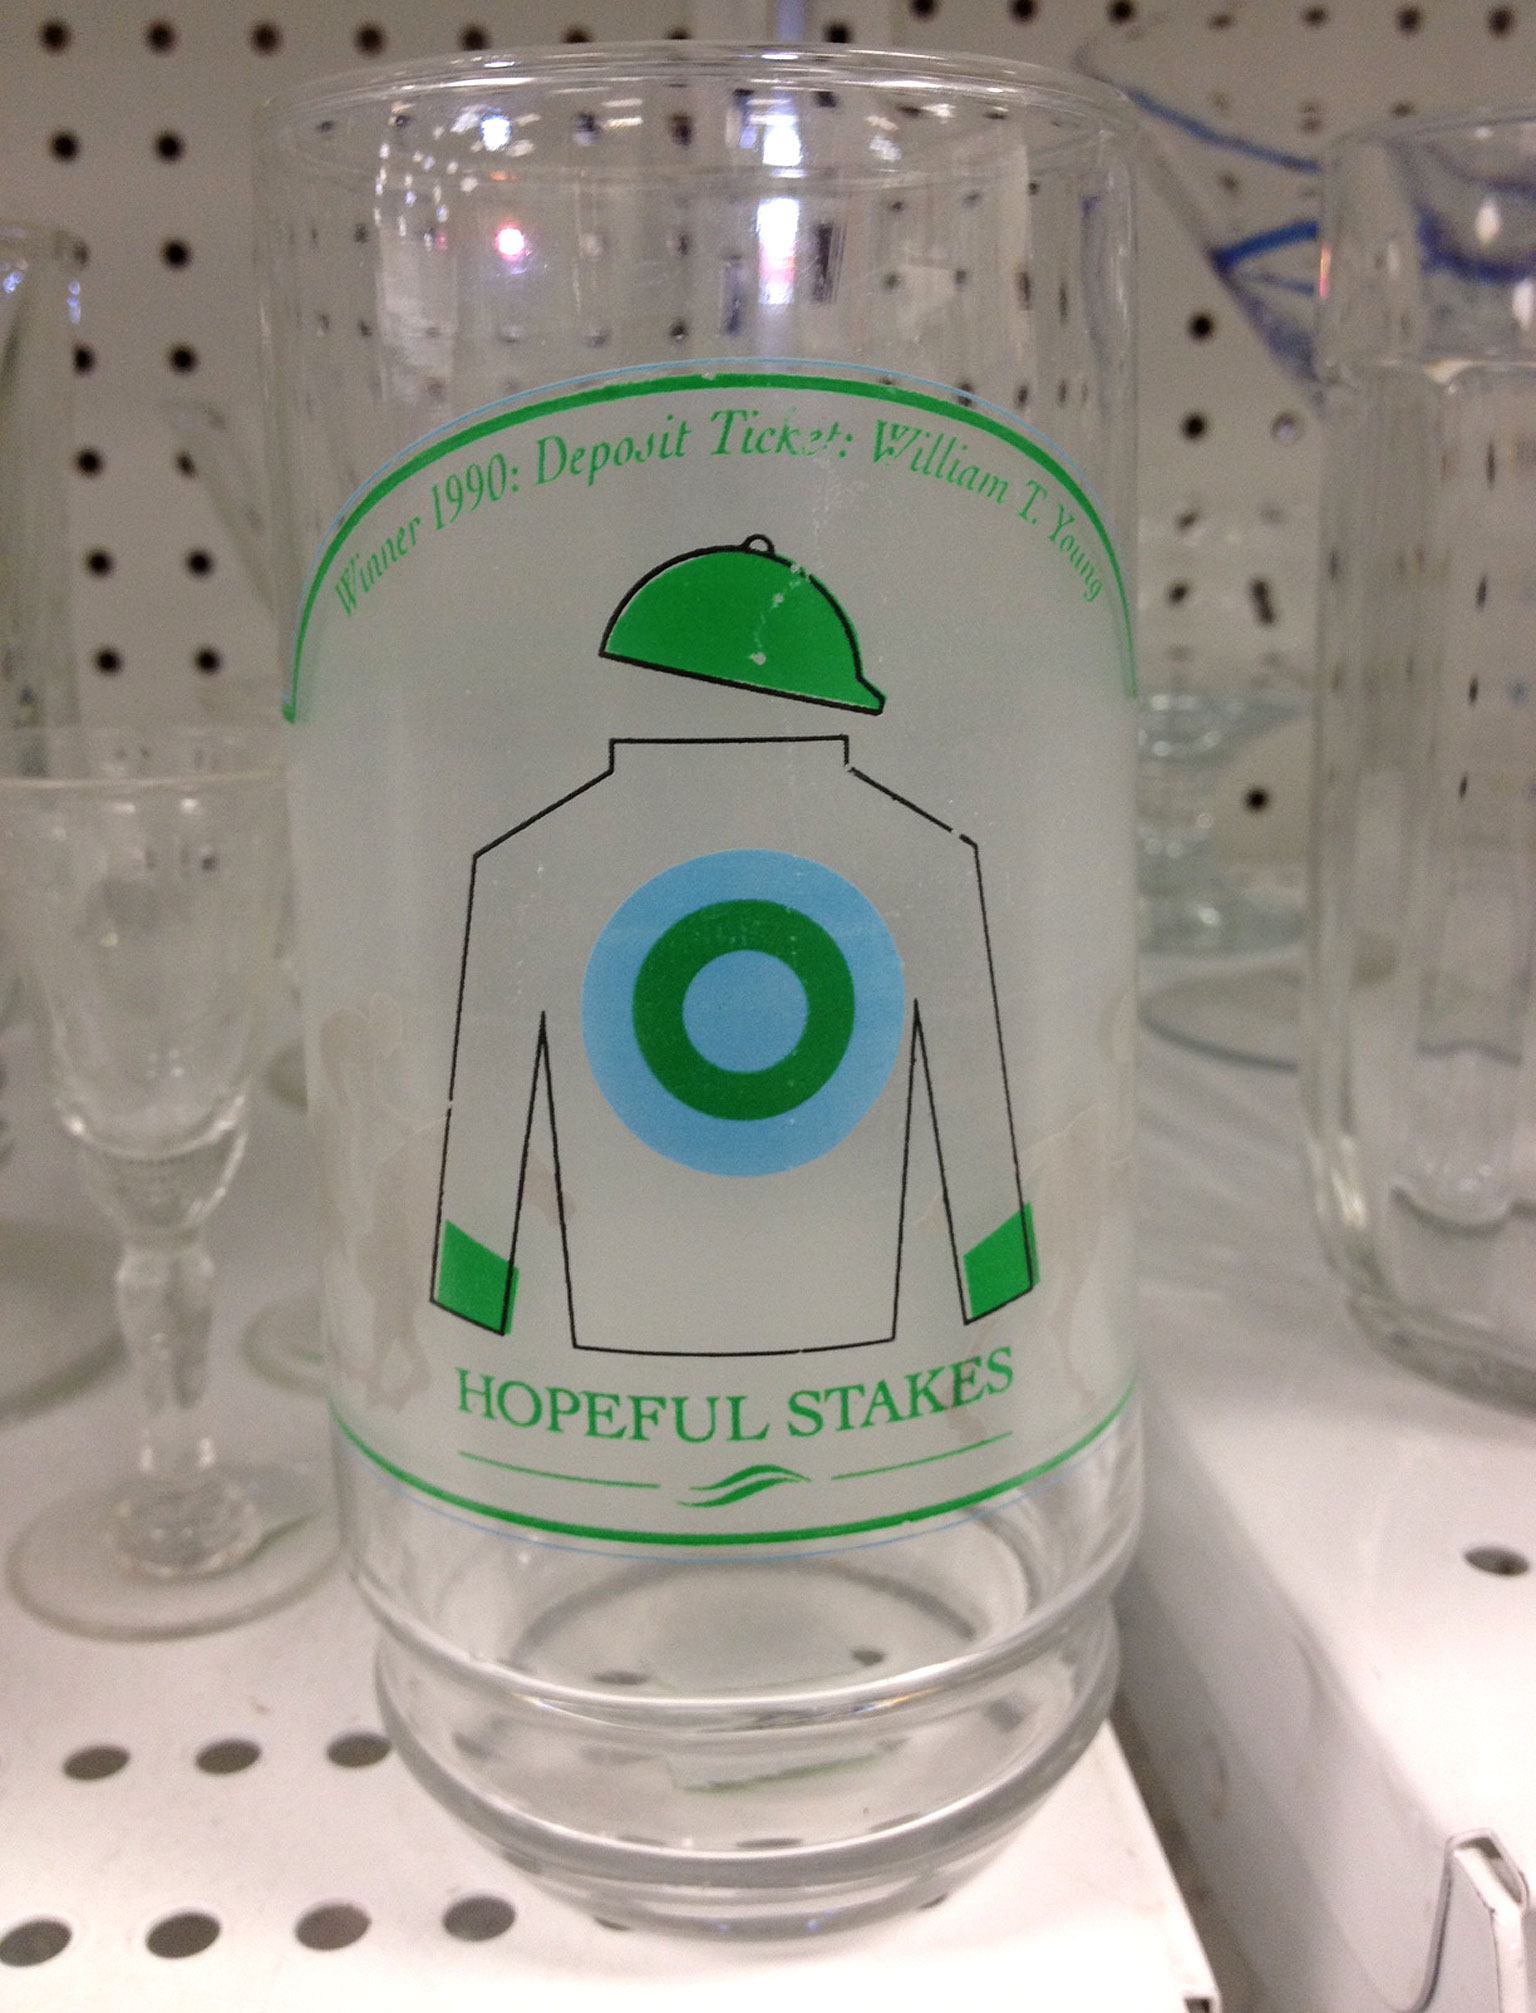 Hopeful Stakes glass: $1